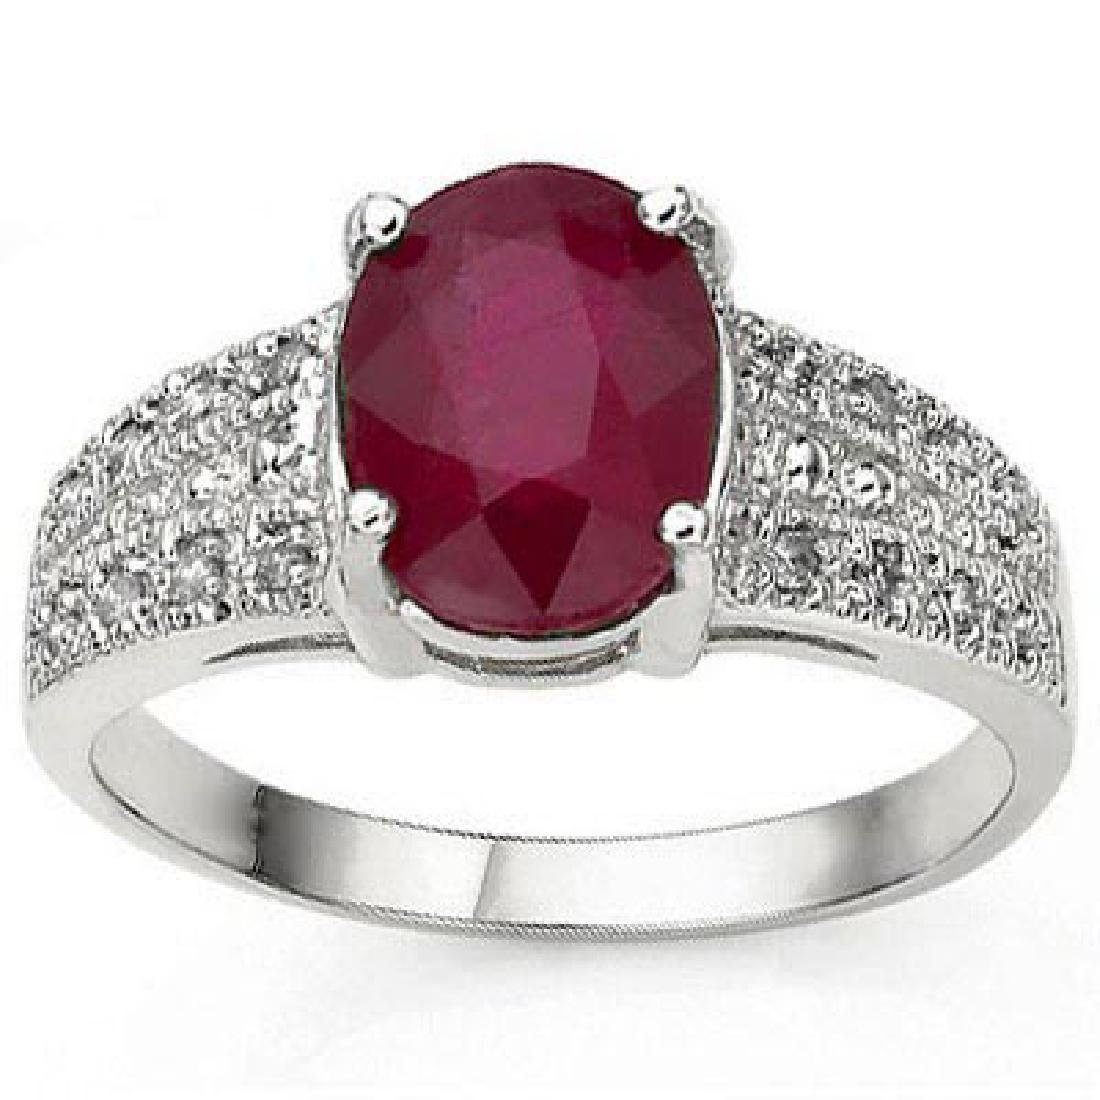 1.82 CT AFRICAN RUBY & 16 PCS WHITE DIAMOND 10K SOLID W